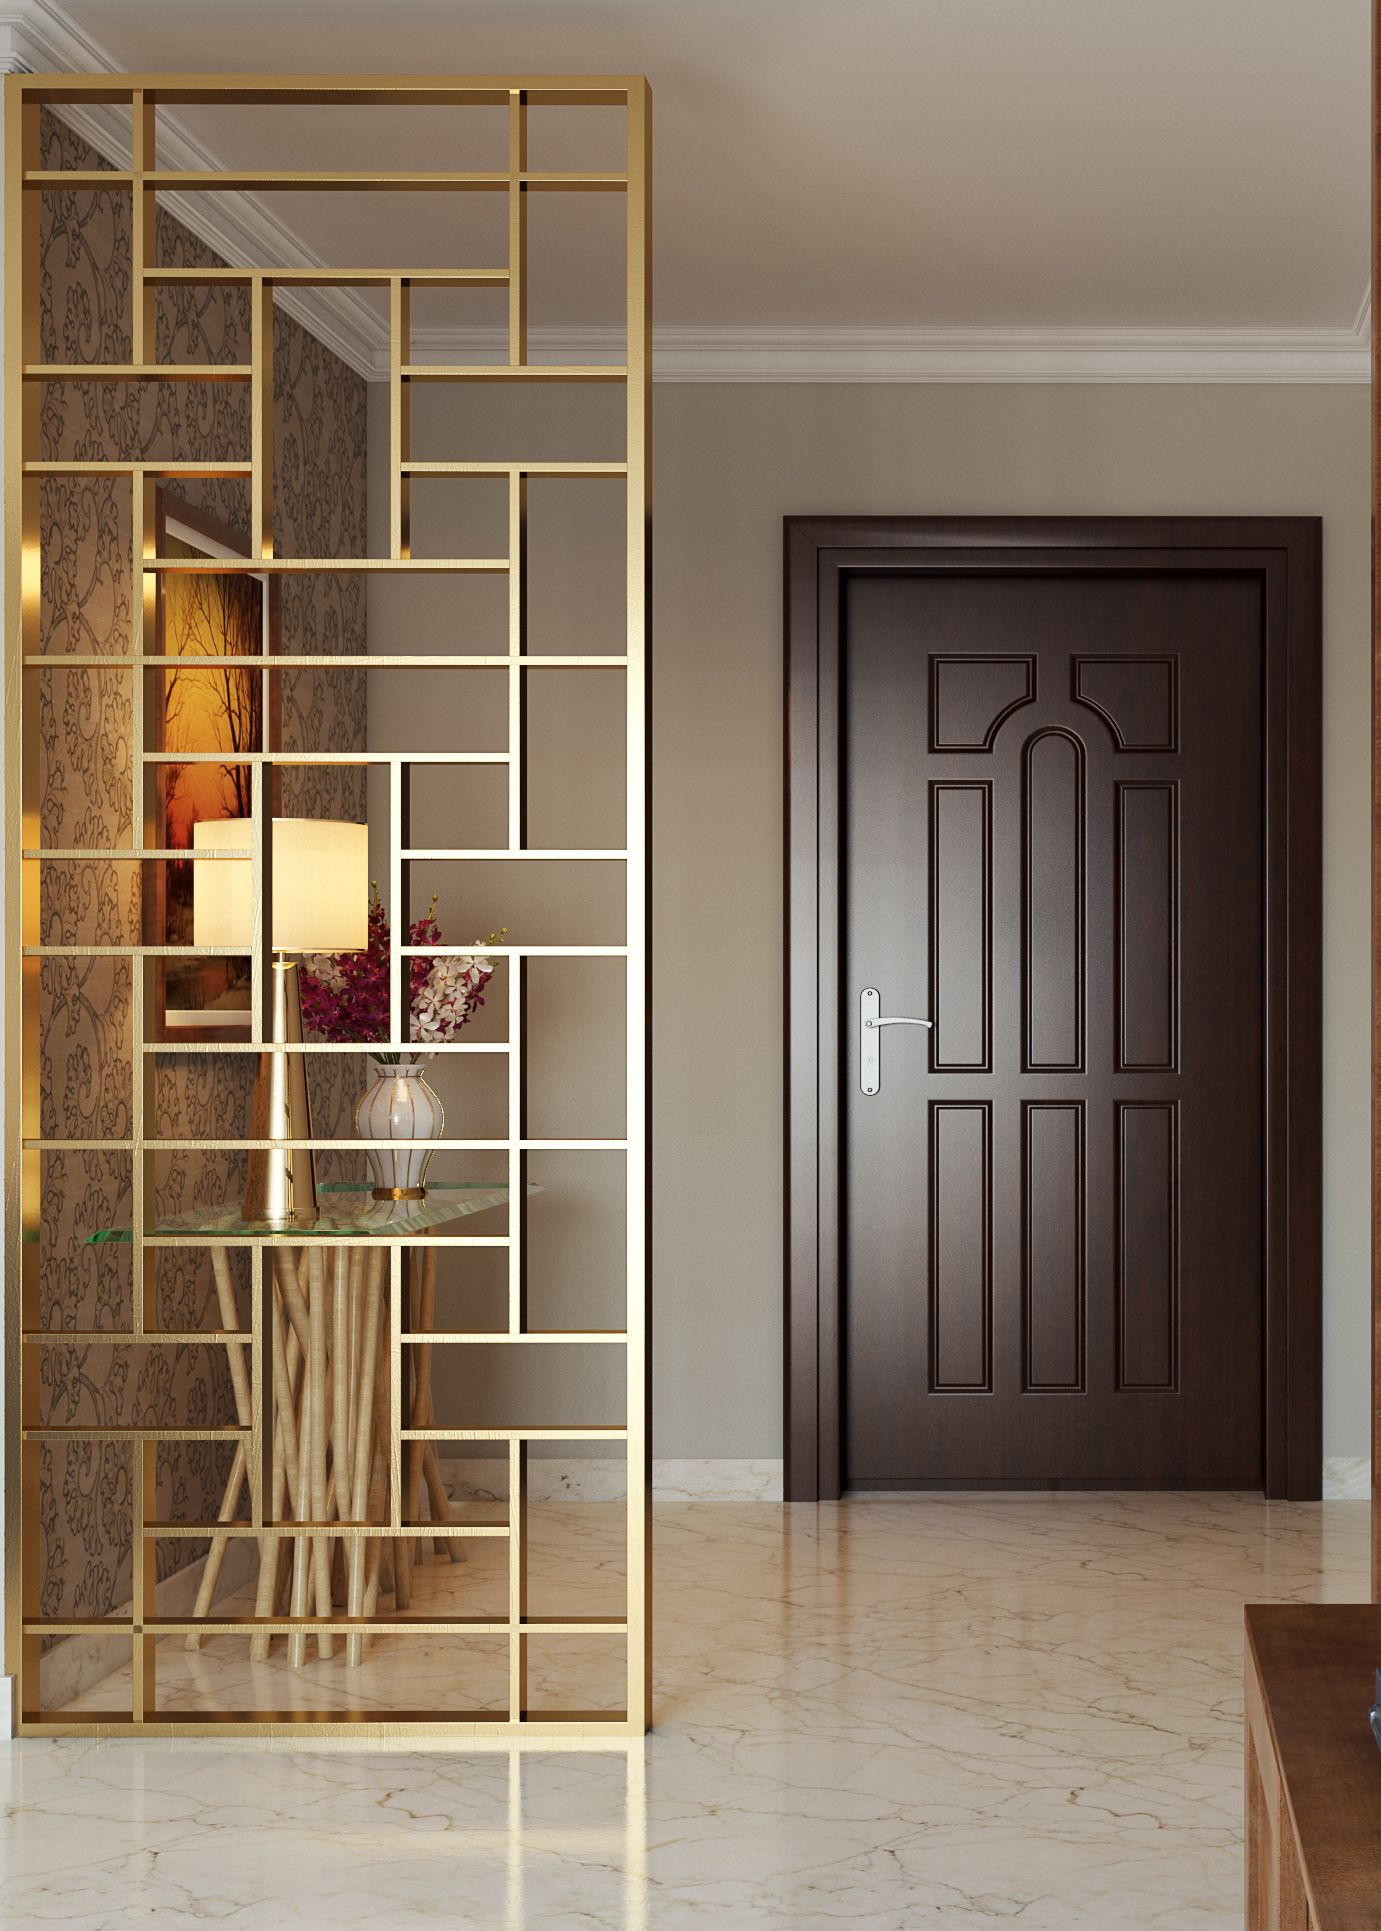 Interior Design Room Dividers: Choose A Contemporary Gold Divider To